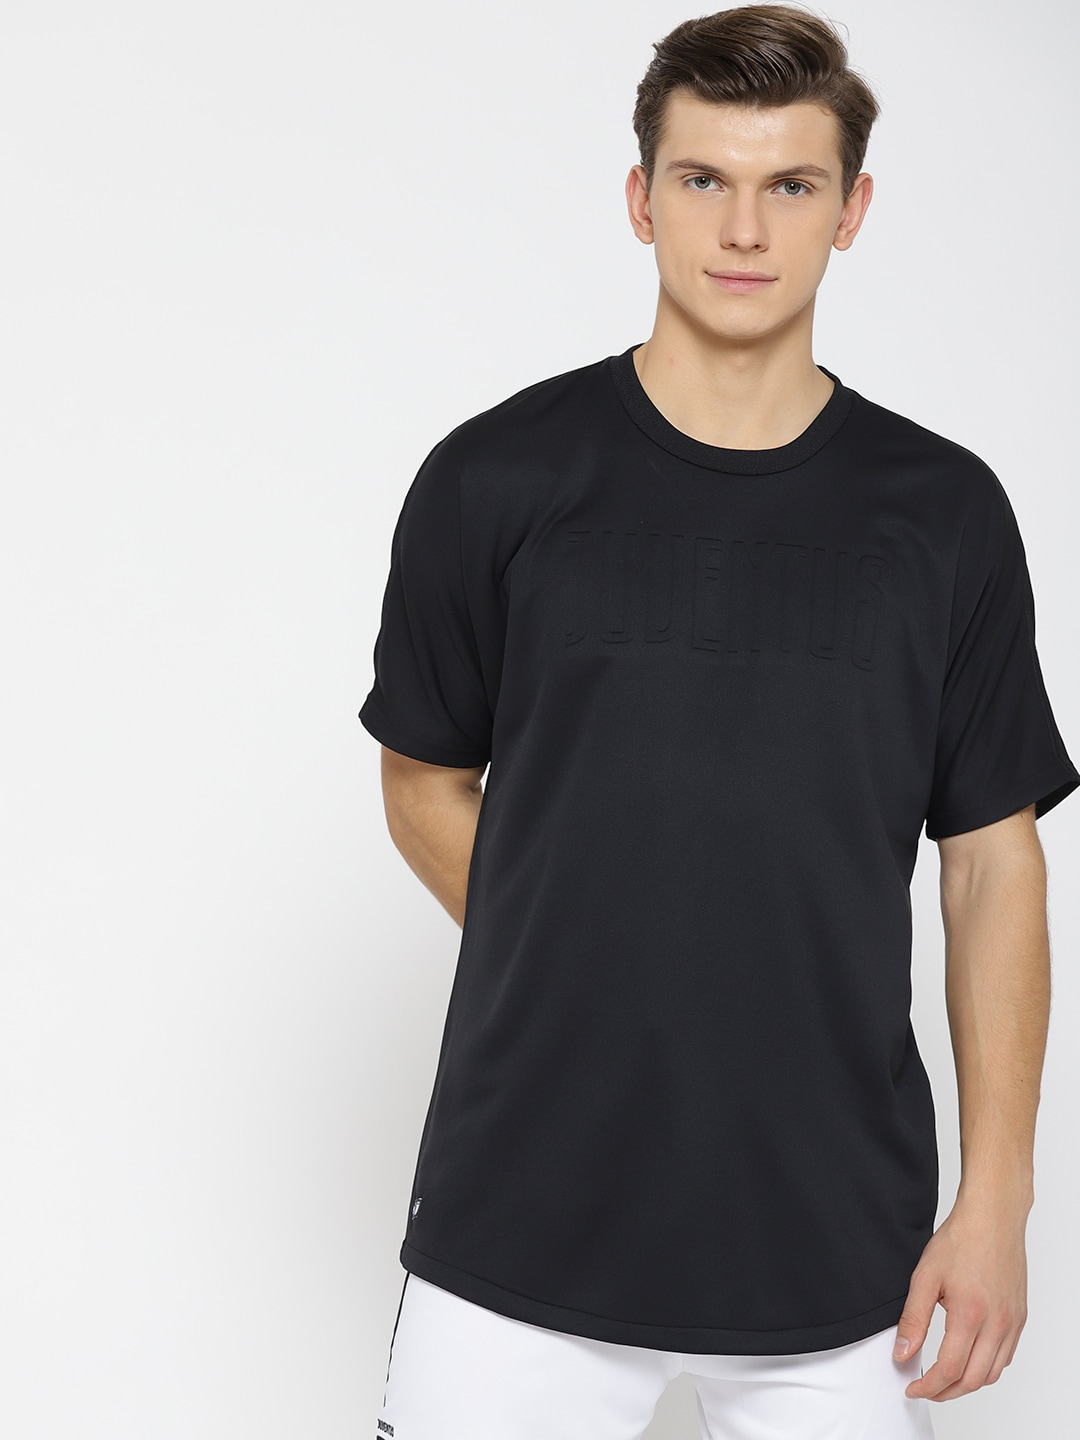 1994a6d2e Adidas T-Shirts - Buy Adidas Tshirts Online in India